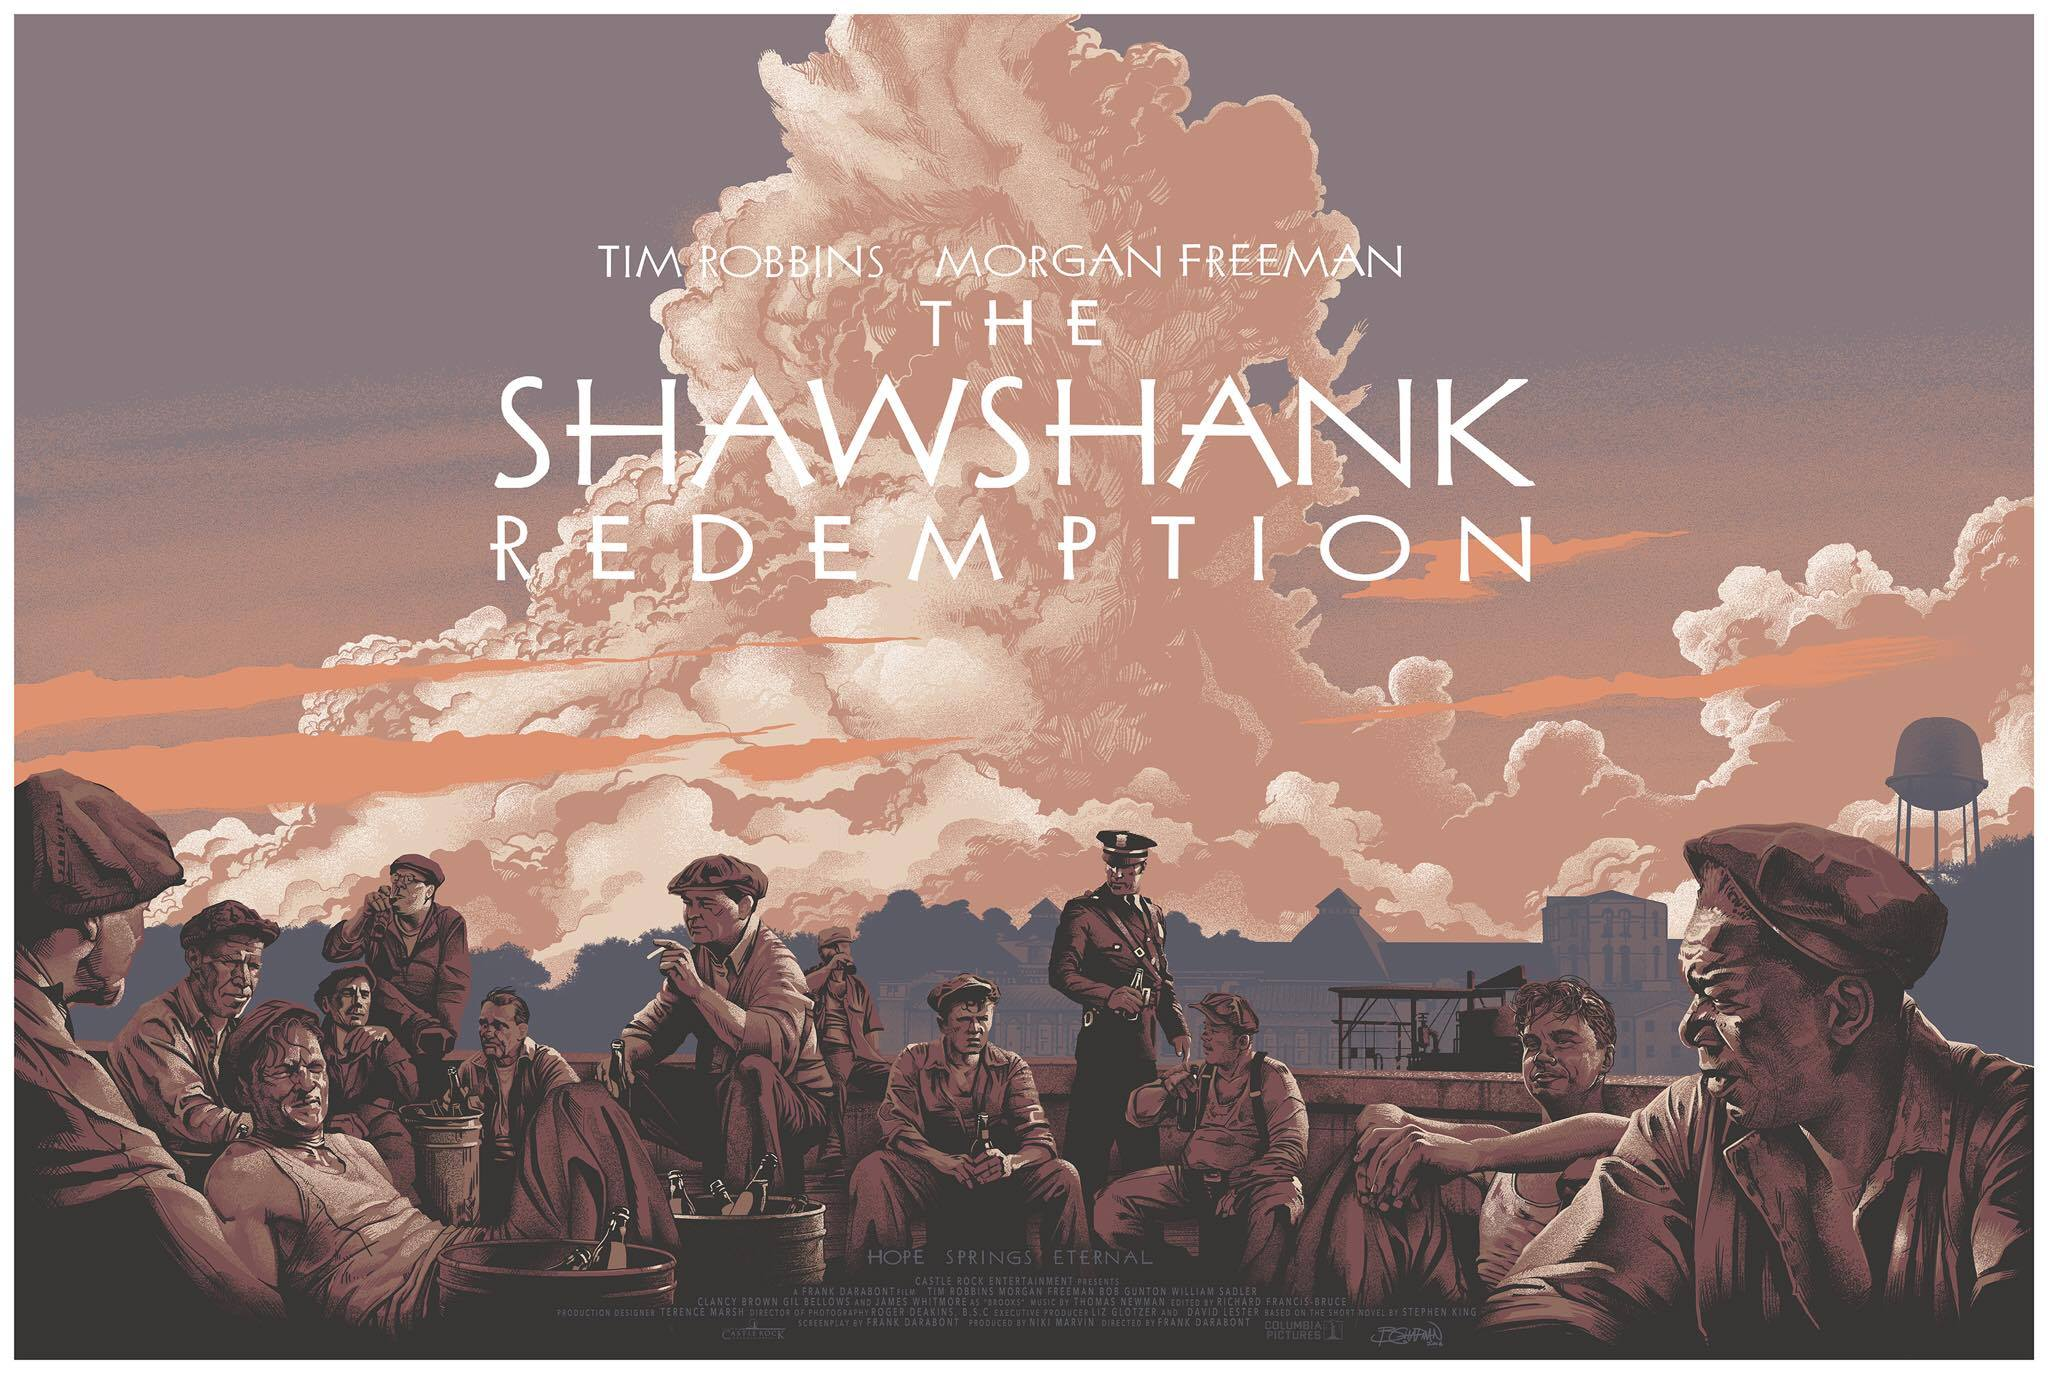 shawshank redemption essays the shawshank redemption commission  the shawshank redemption commission print by barret chapman 13987132 10154400868819183 1442513709 o 13989461 10154400867874183 792856509 n